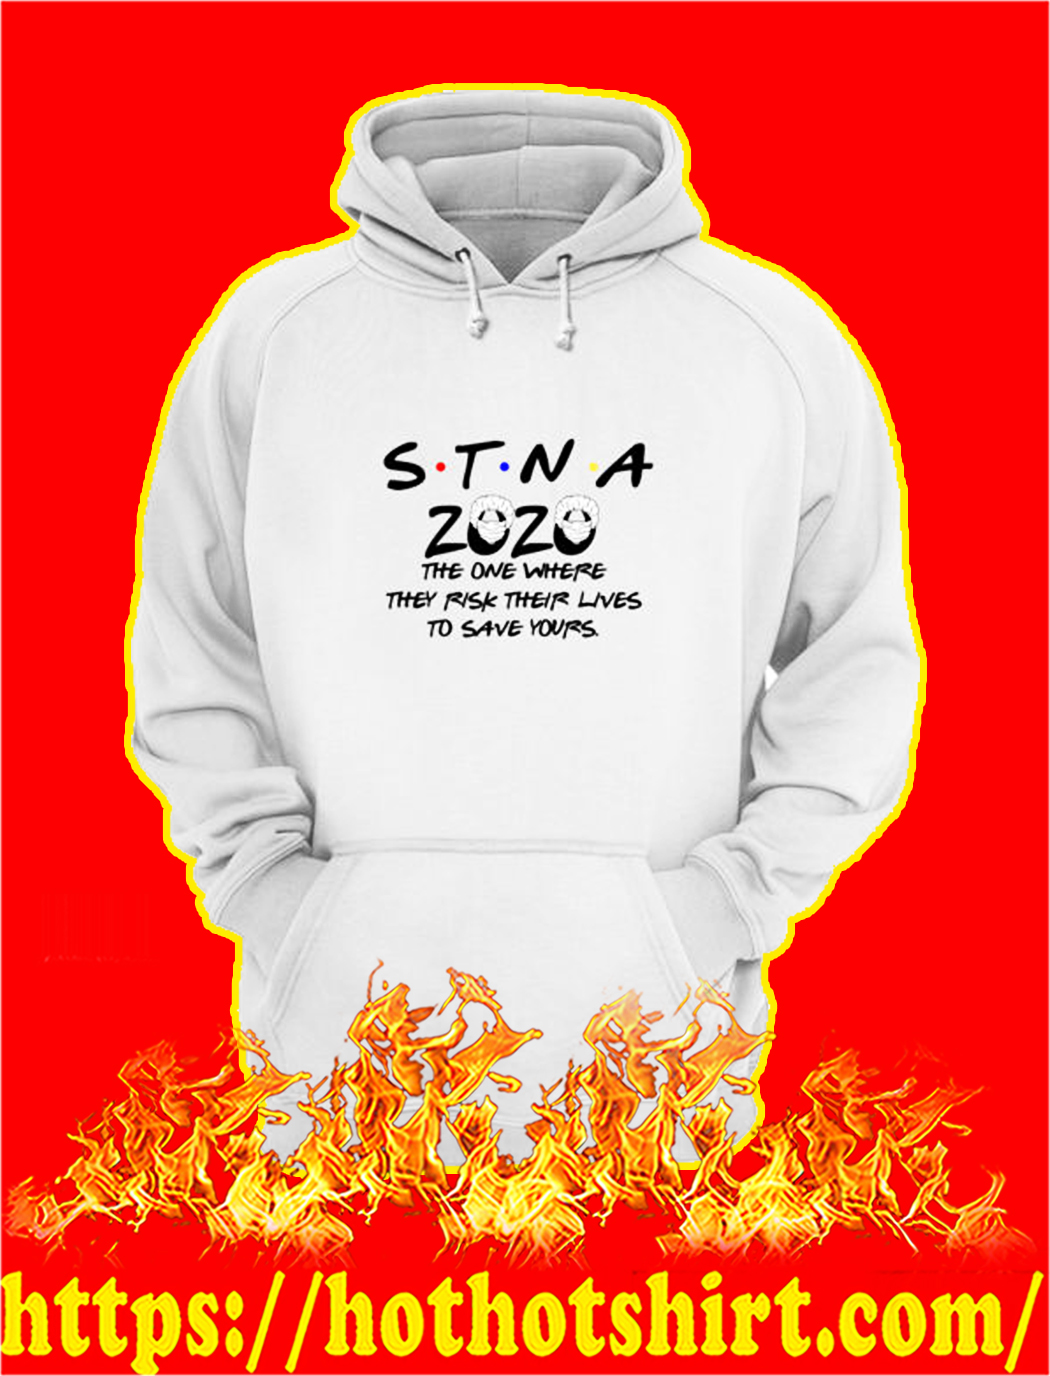 STNA 2020 the one where they risk their lives to save yours hoodie